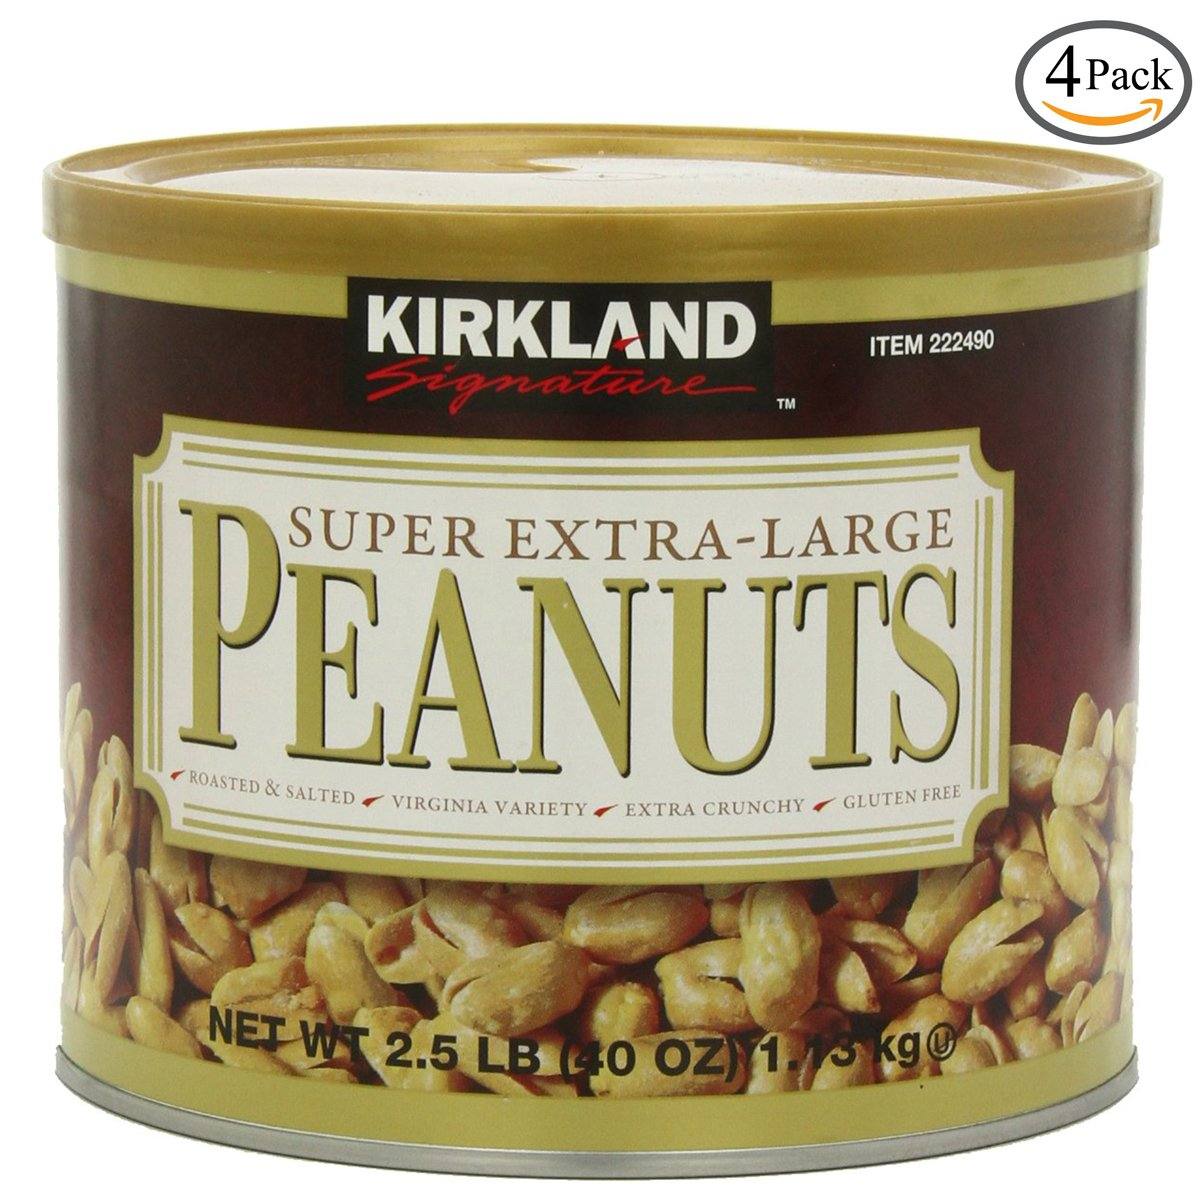 Kirkland Signature Super XL VA Peanuts, 40 Ounce, 3 Pack by Kirkland Signature